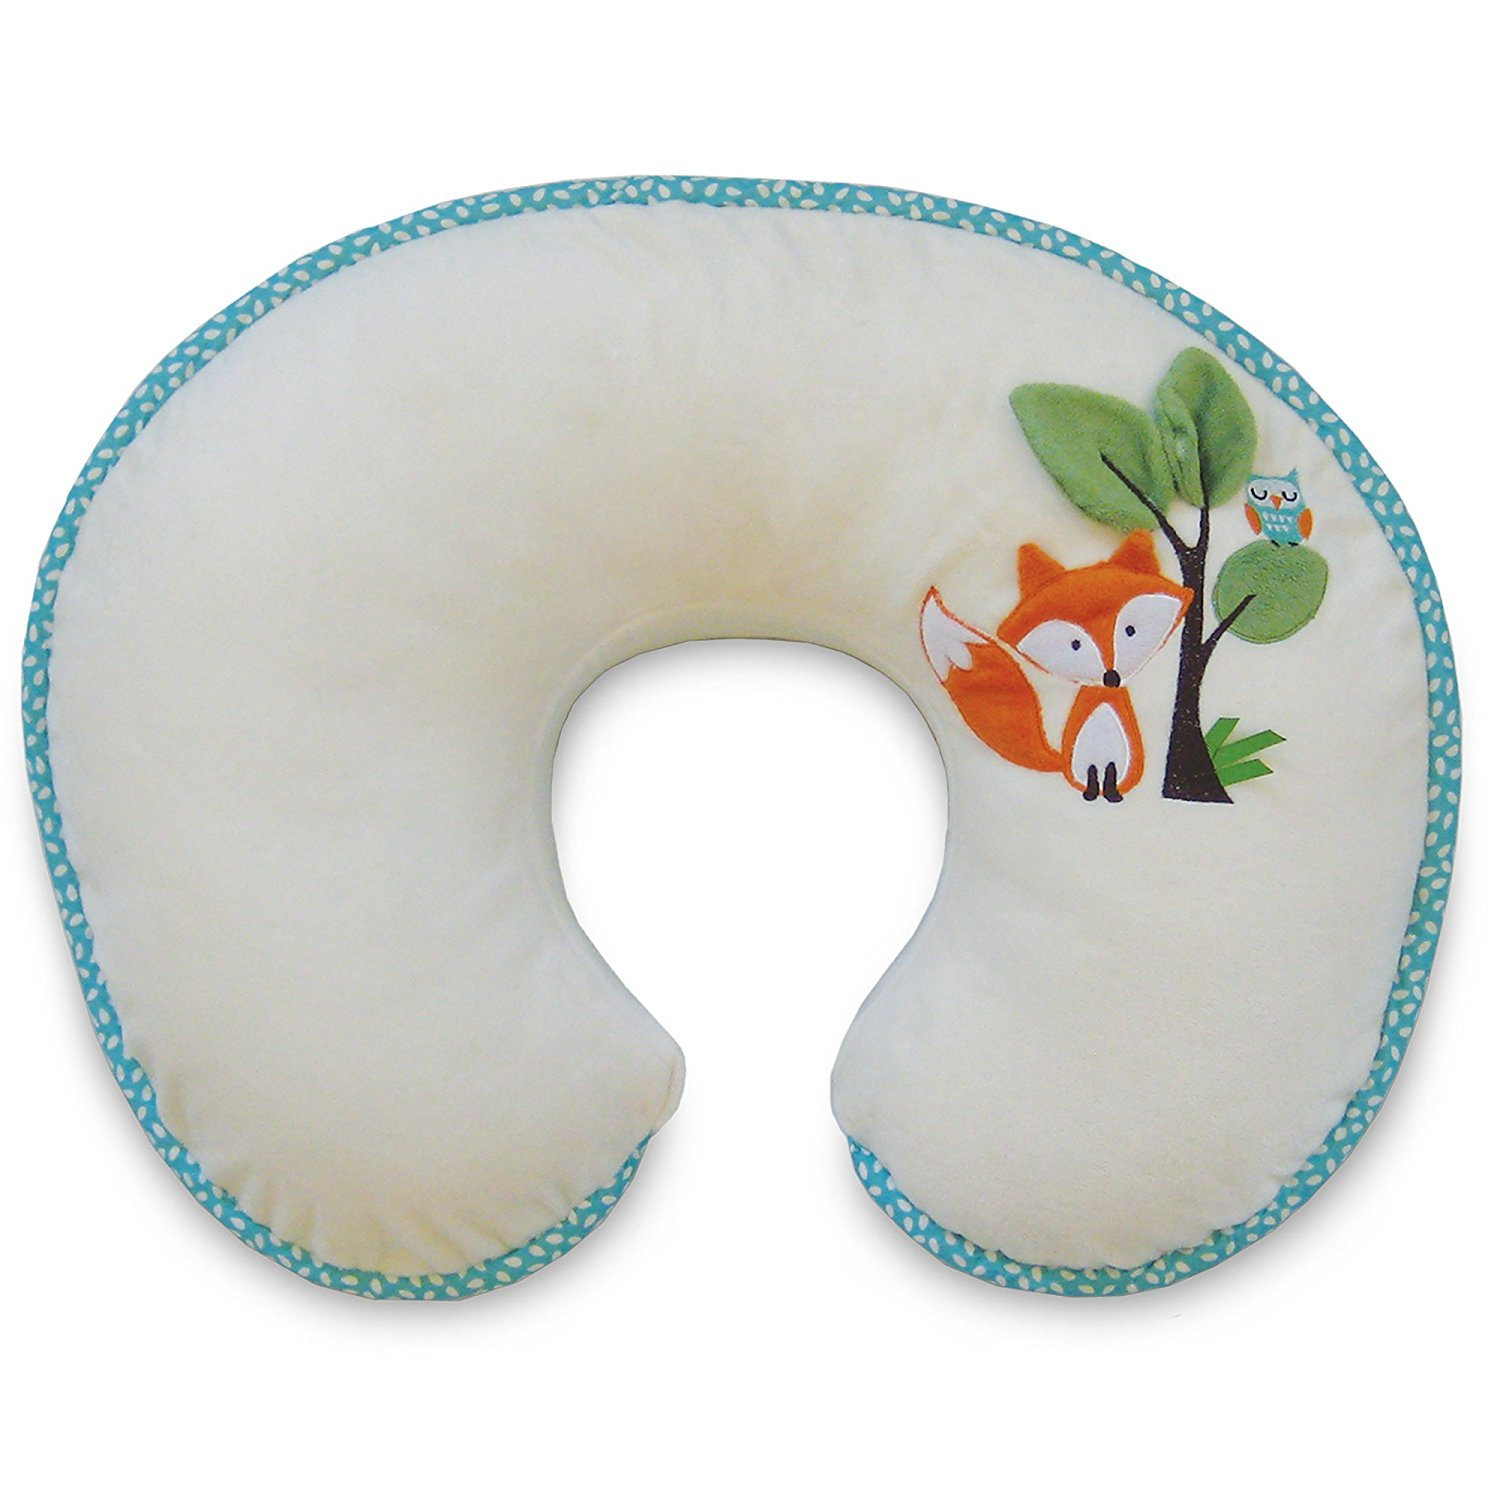 Nursing Pillow and Positioner, Luxe Fox and Owl, Ship from America by